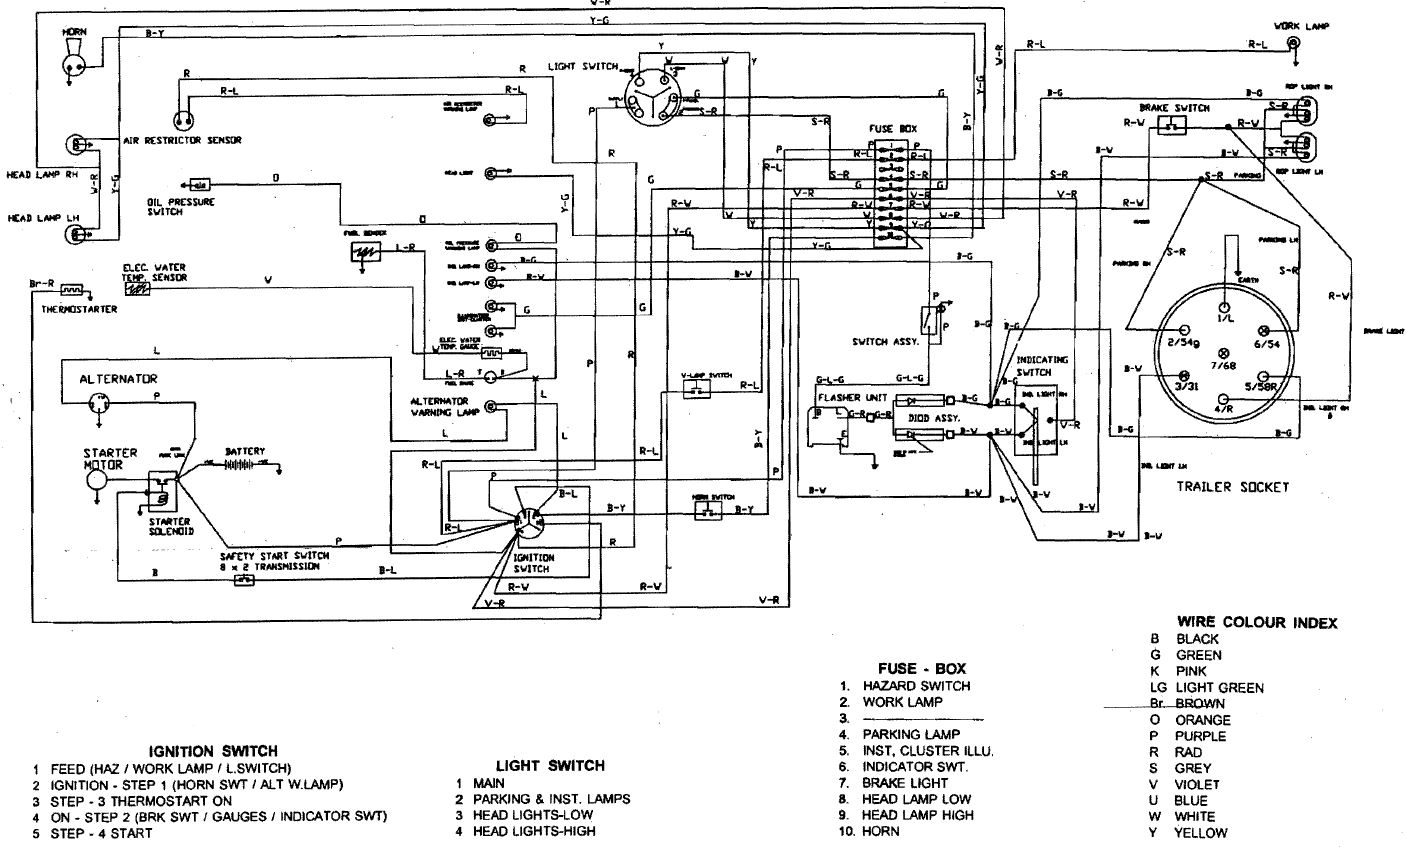 Ignition switch wiring diagram on new holland tractor 70 hp, new holland tn55 tractor, new holland ts115a tractor, new holland workmaster 75 tractor, new holland tl100 tractor, new holland t7040 tractor, new holland tc35 tractor, new holland tm135 tractor, new holland tl90a tractor, new holland tc45 tractor, new holland ts90 tractor,